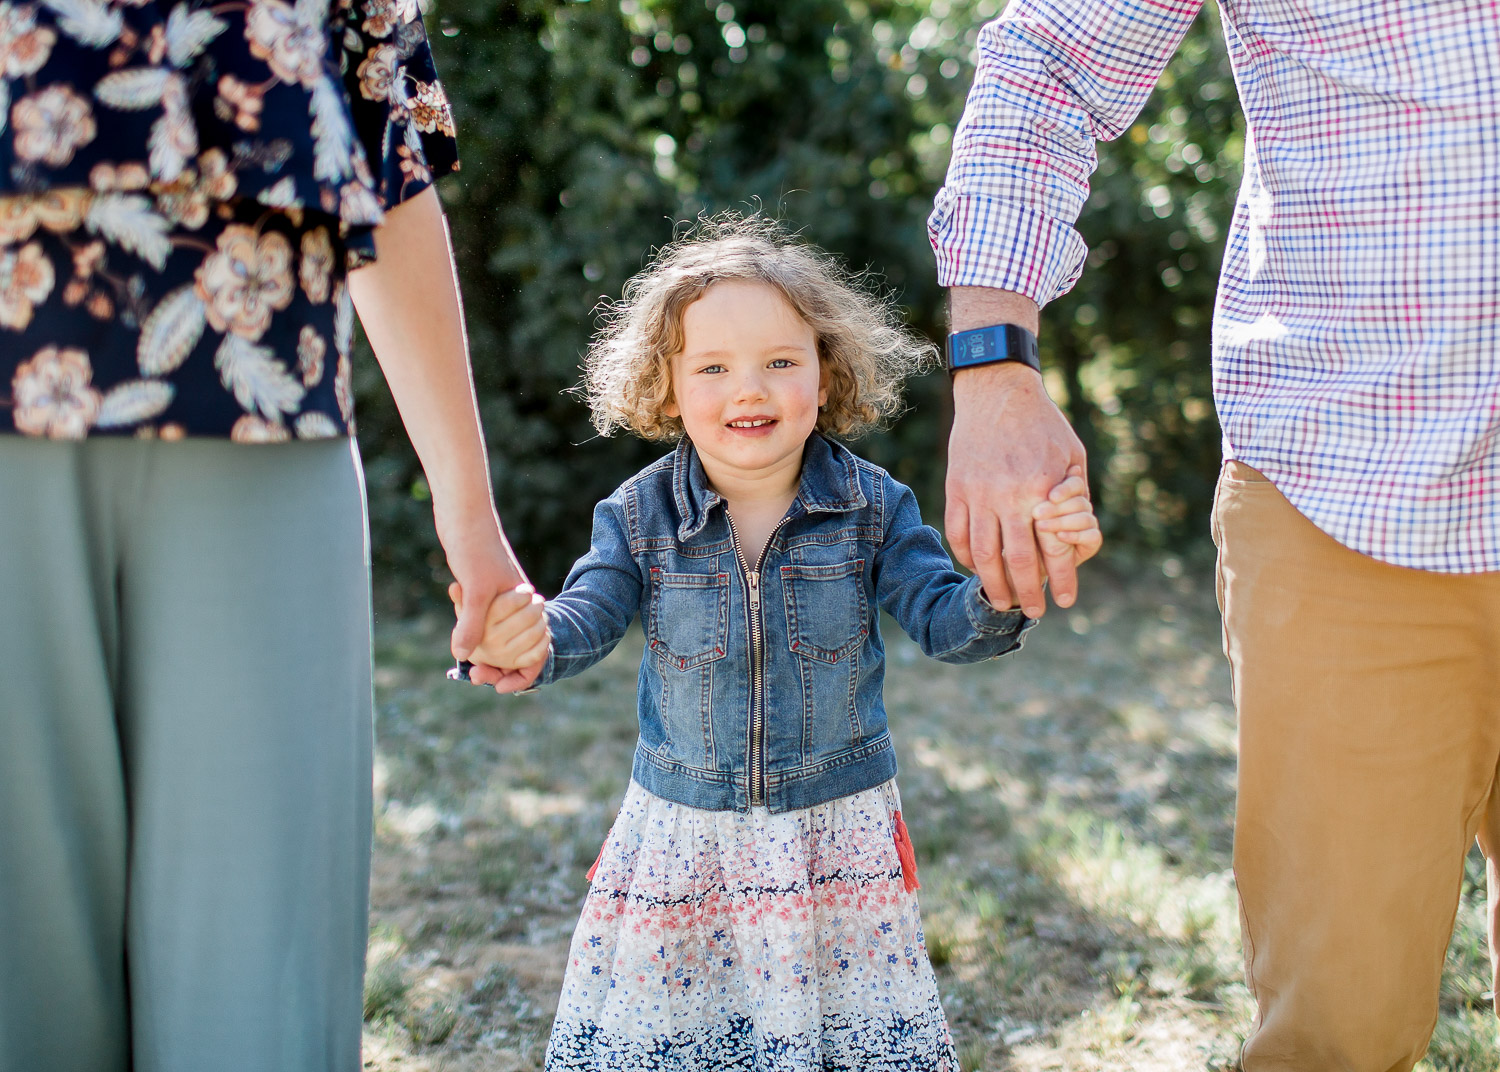 Family portrait photographer temora nsw